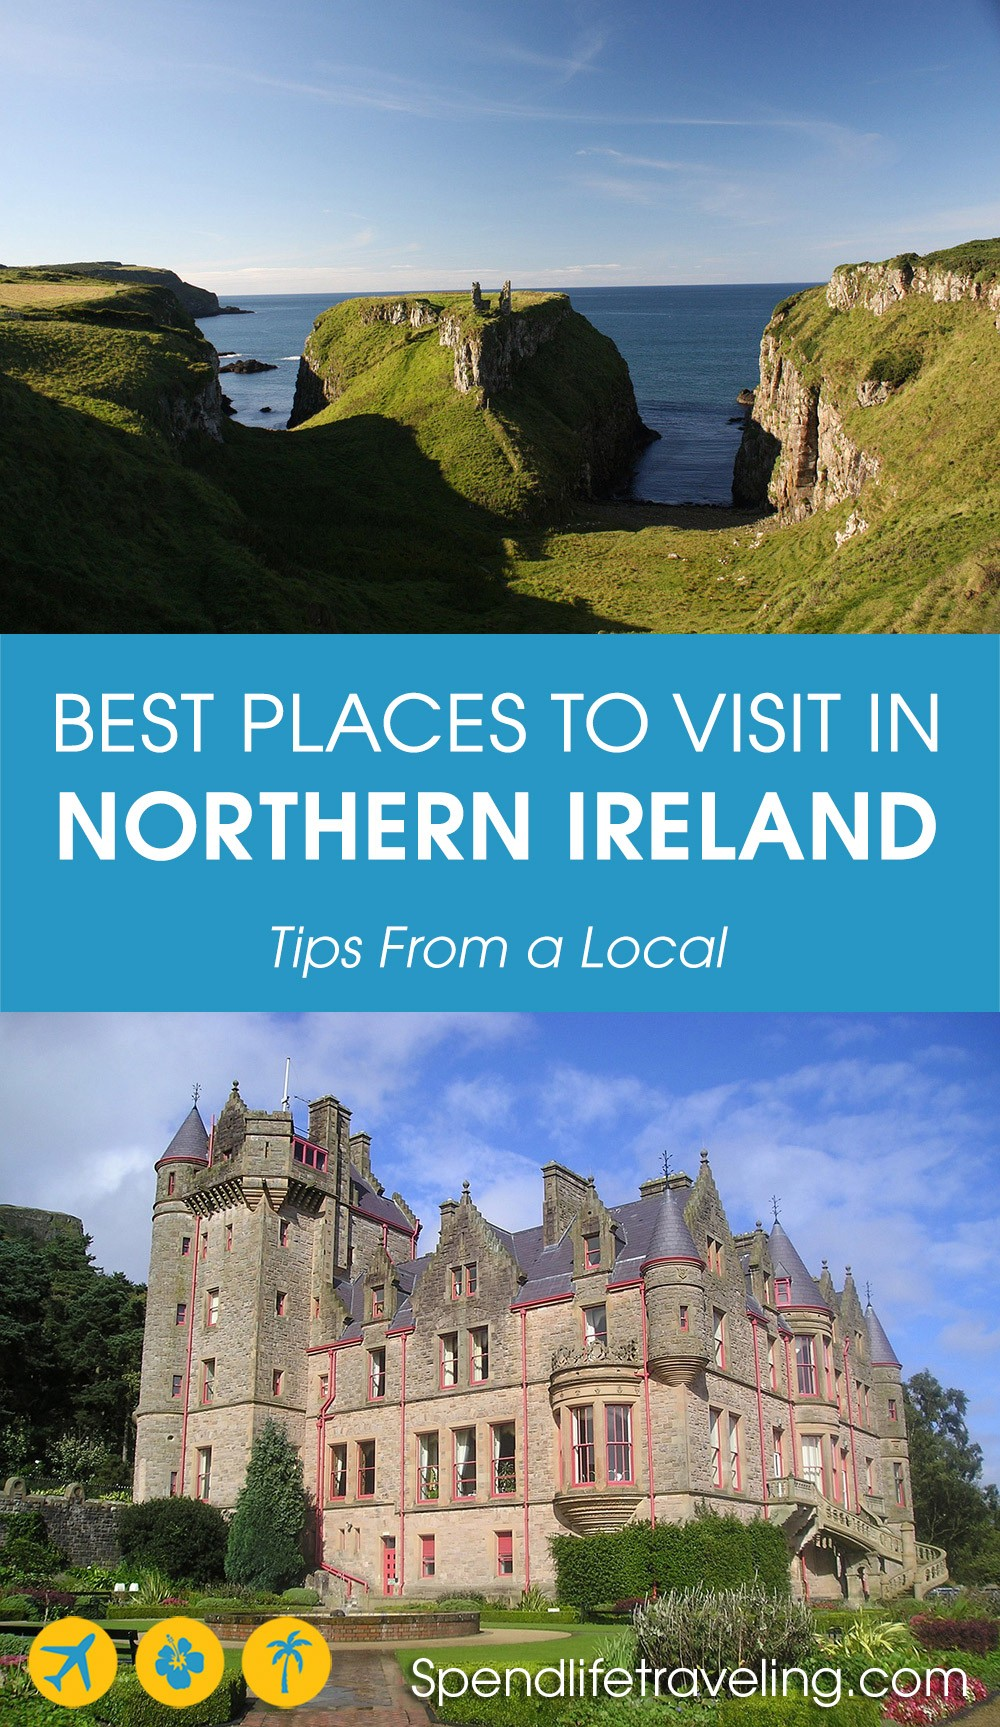 Must-visit places and things to do in Northern Ireland. #NorthernIreland #travelIreland #visitIreland